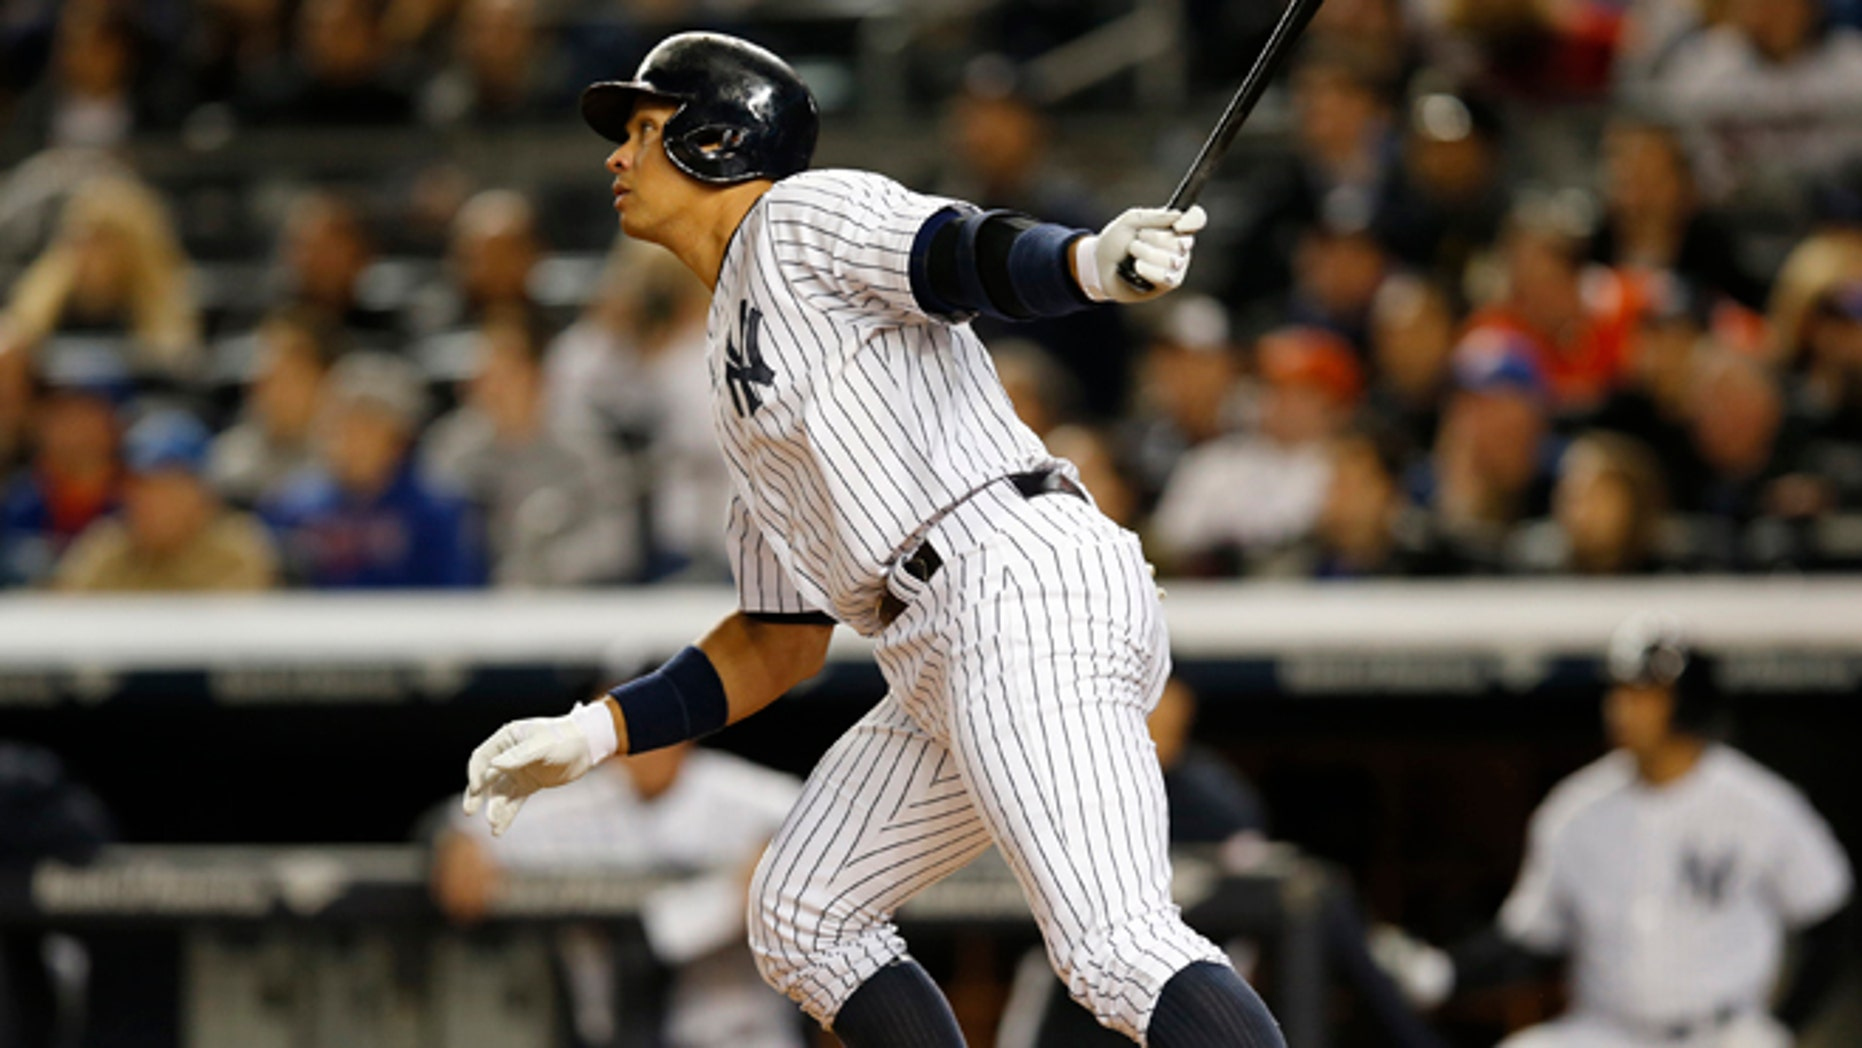 New York Yankees designated hitter Alex Rodriguez (13) hits a first-inning solo home run in a baseball game against the New York Mets at Yankee Stadium in New York, Sunday, April 26, 2015. Rodriguez now stands at 659 career home runs and needs one more to tie Willie Mays.  (AP Photo/Kathy Willens)